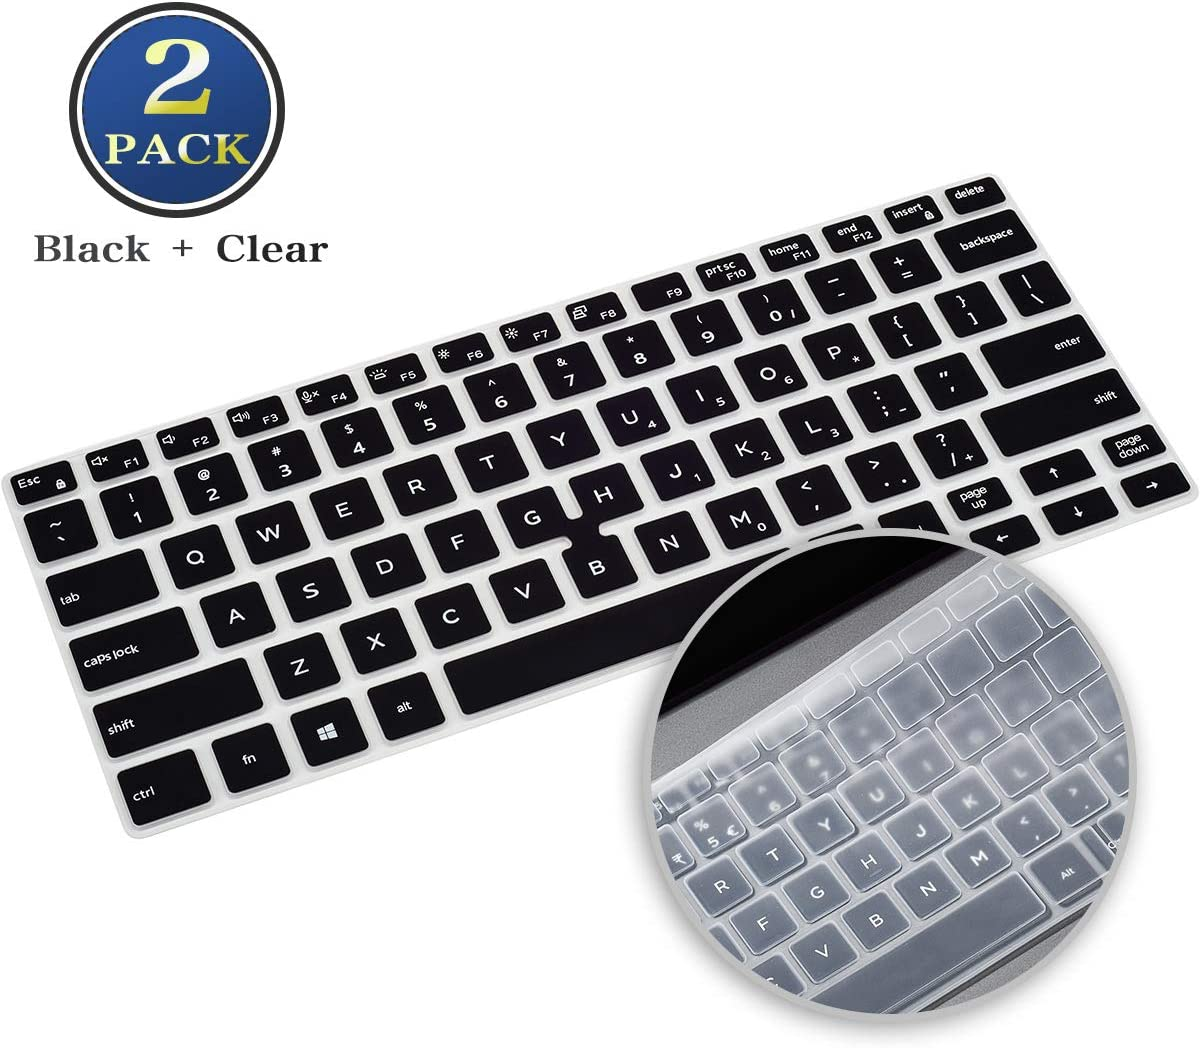 2 Pack Dell Latitude 14 5400 Keyboard Cover, Silicone Keyboard Skin Protector for Dell Latitude 14 Inch 3400 5401 7400, Dell Latitude 14 Keyboard Accessories(Black+Clear)